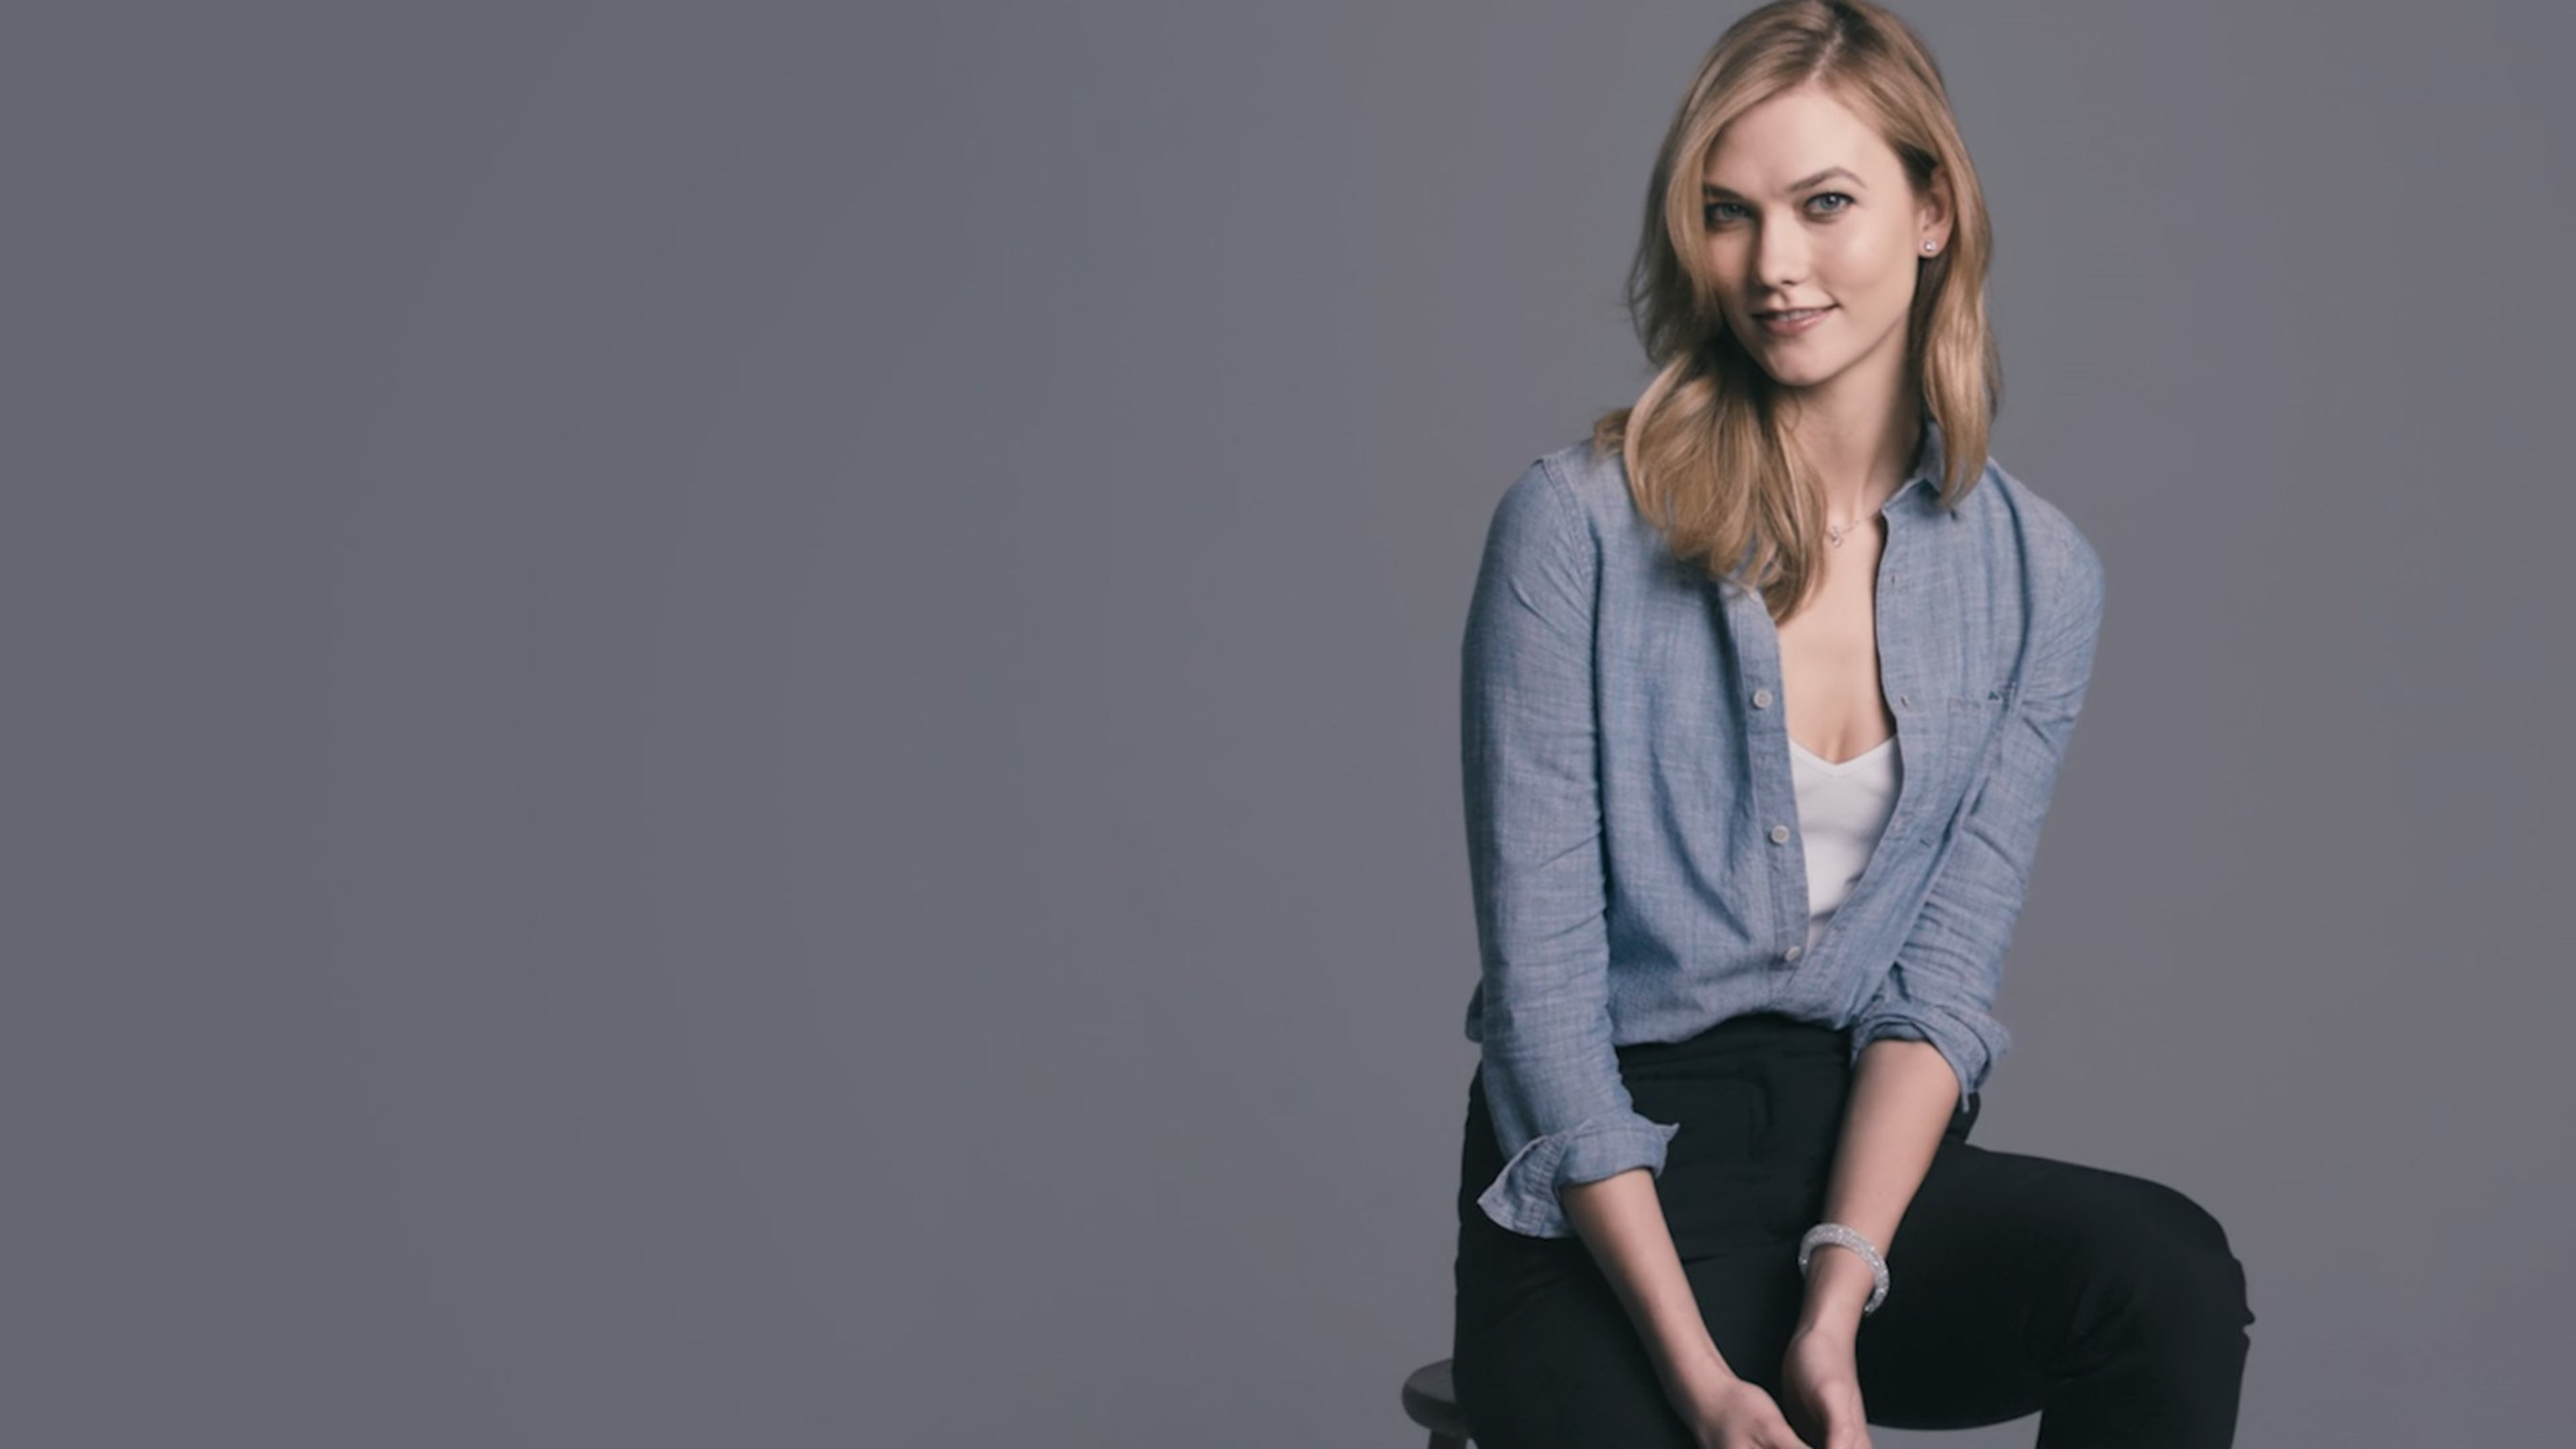 36d75d4e5d8e Swarovski And The Science Project Unveil New Integrated Digital Campaign To  Introduce The World To Karlie Kloss As The New Face Of Swarovski